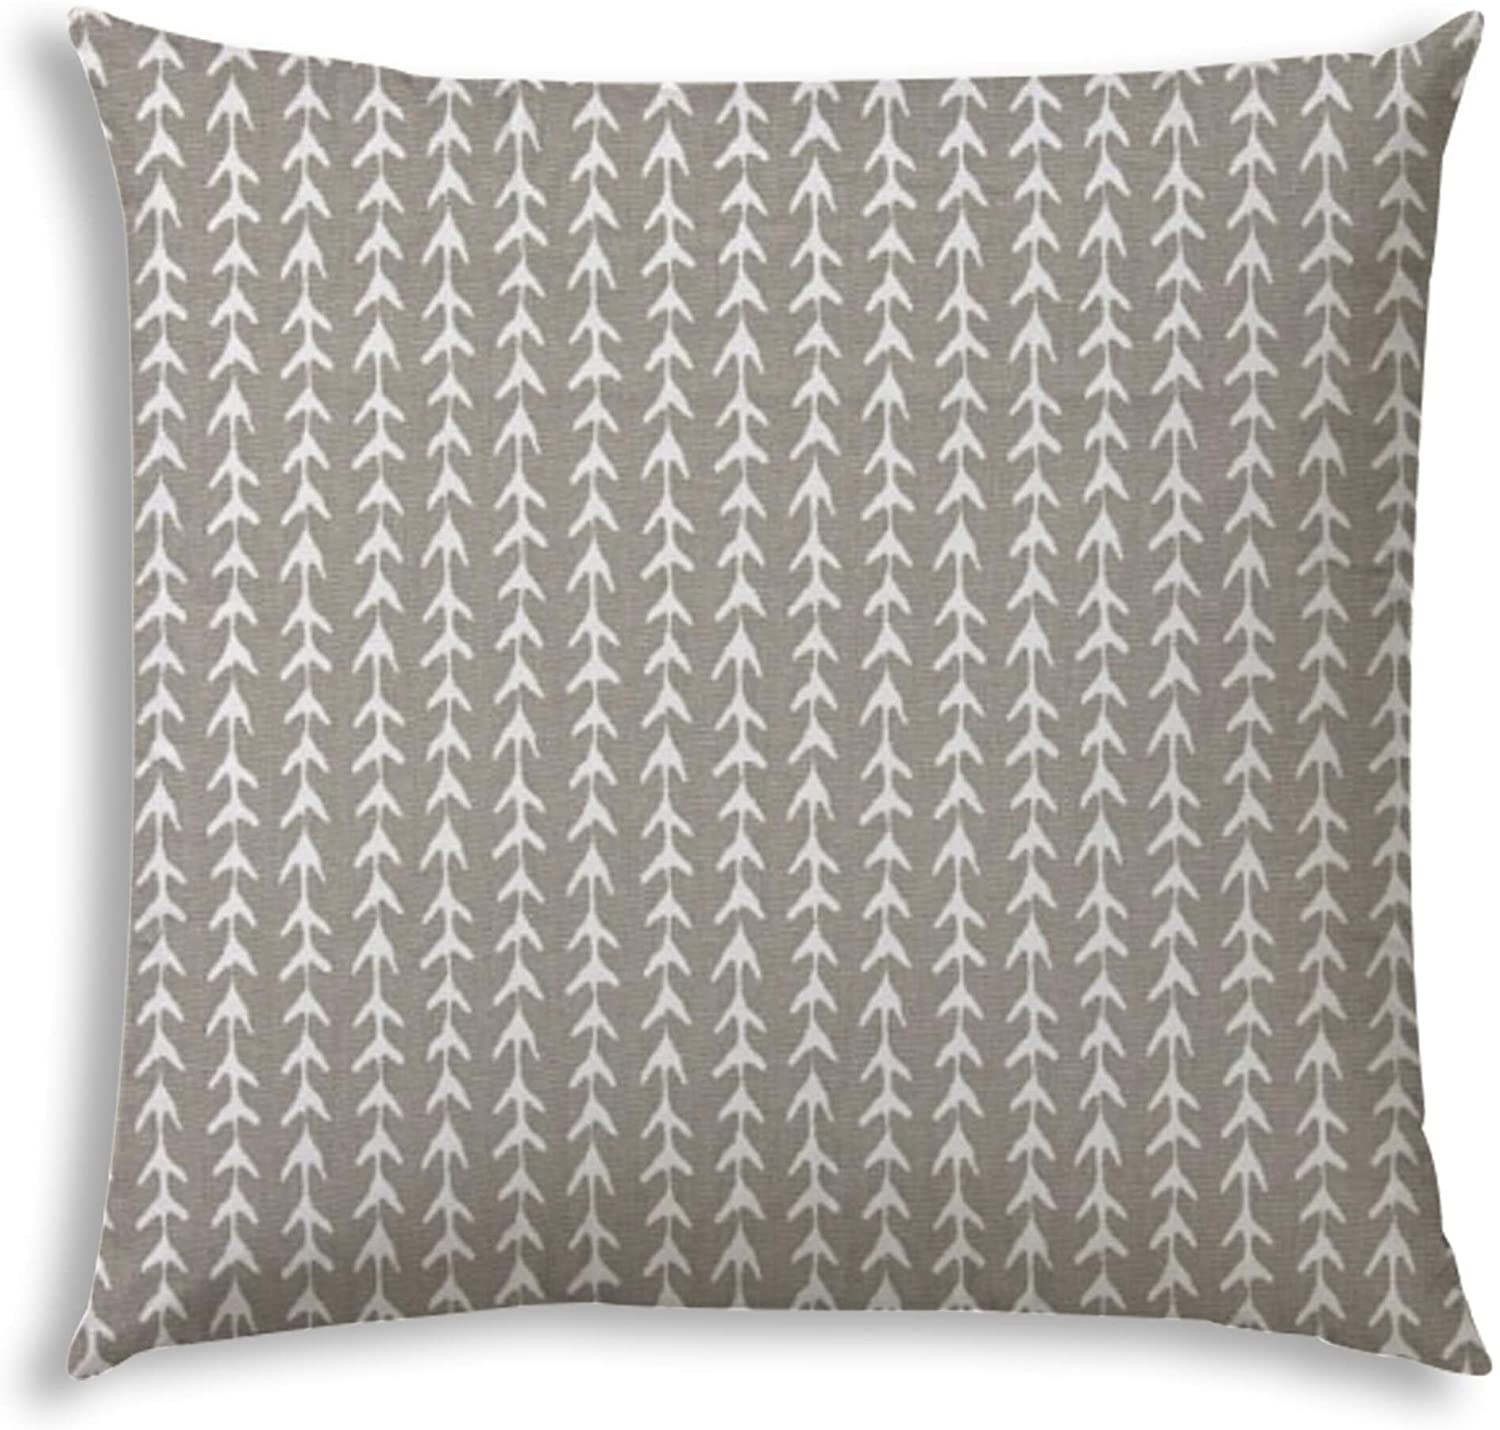 Trek Taupe Indoor/Outdoor Pillow Sewn Closure N/ Color Striped Modern Contemporary Polyester Water Resistant